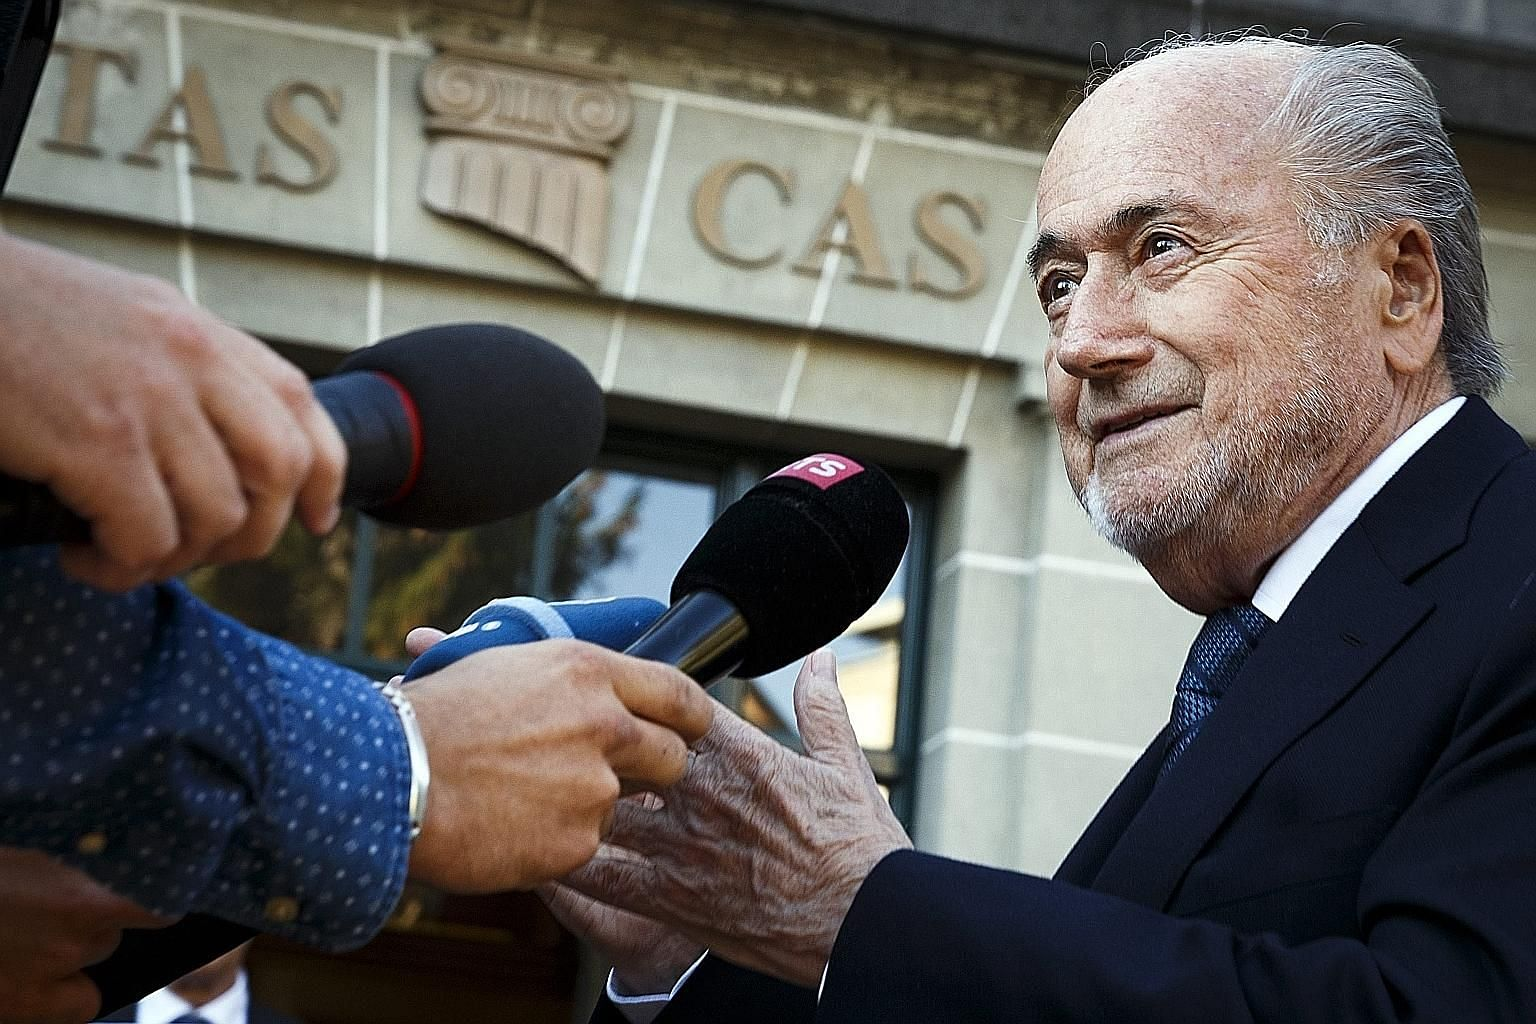 Former Fifa president Sepp Blatter arrives at the Court of Arbitration for Sport in Lausanne yesterday for the hearing of his appeal against a six-year ban from football for ethics violations.